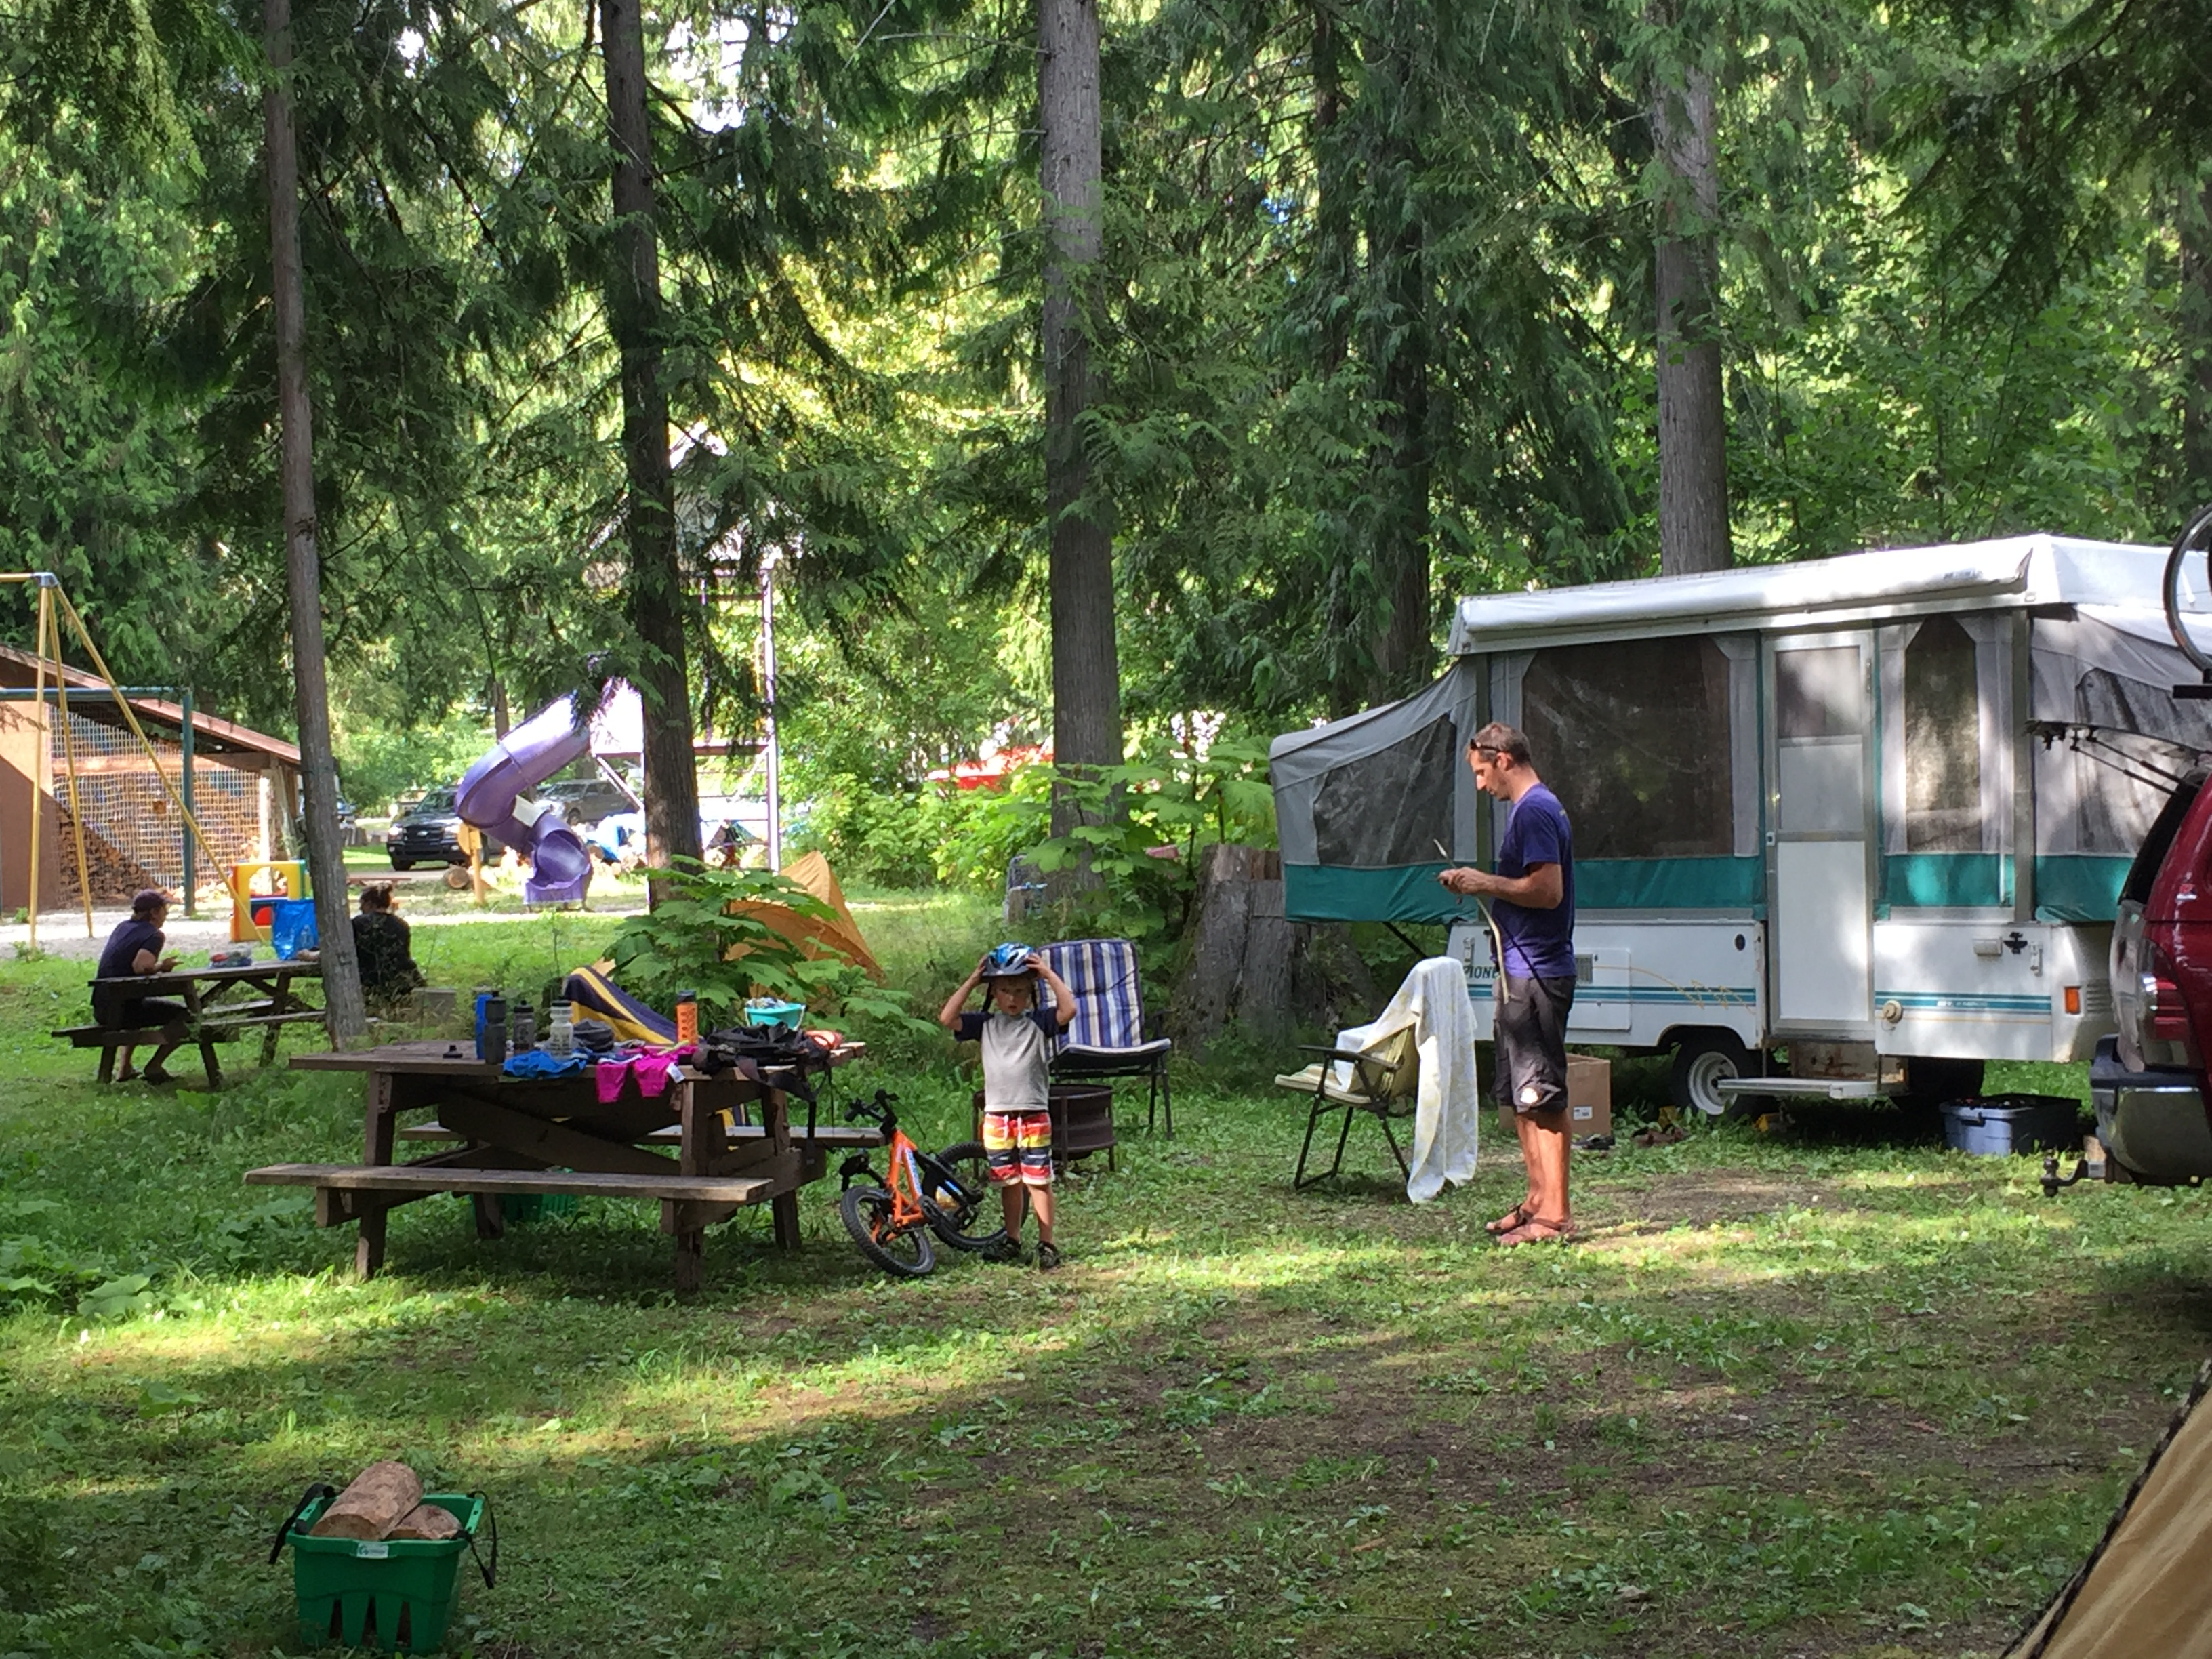 Family enjoying campground